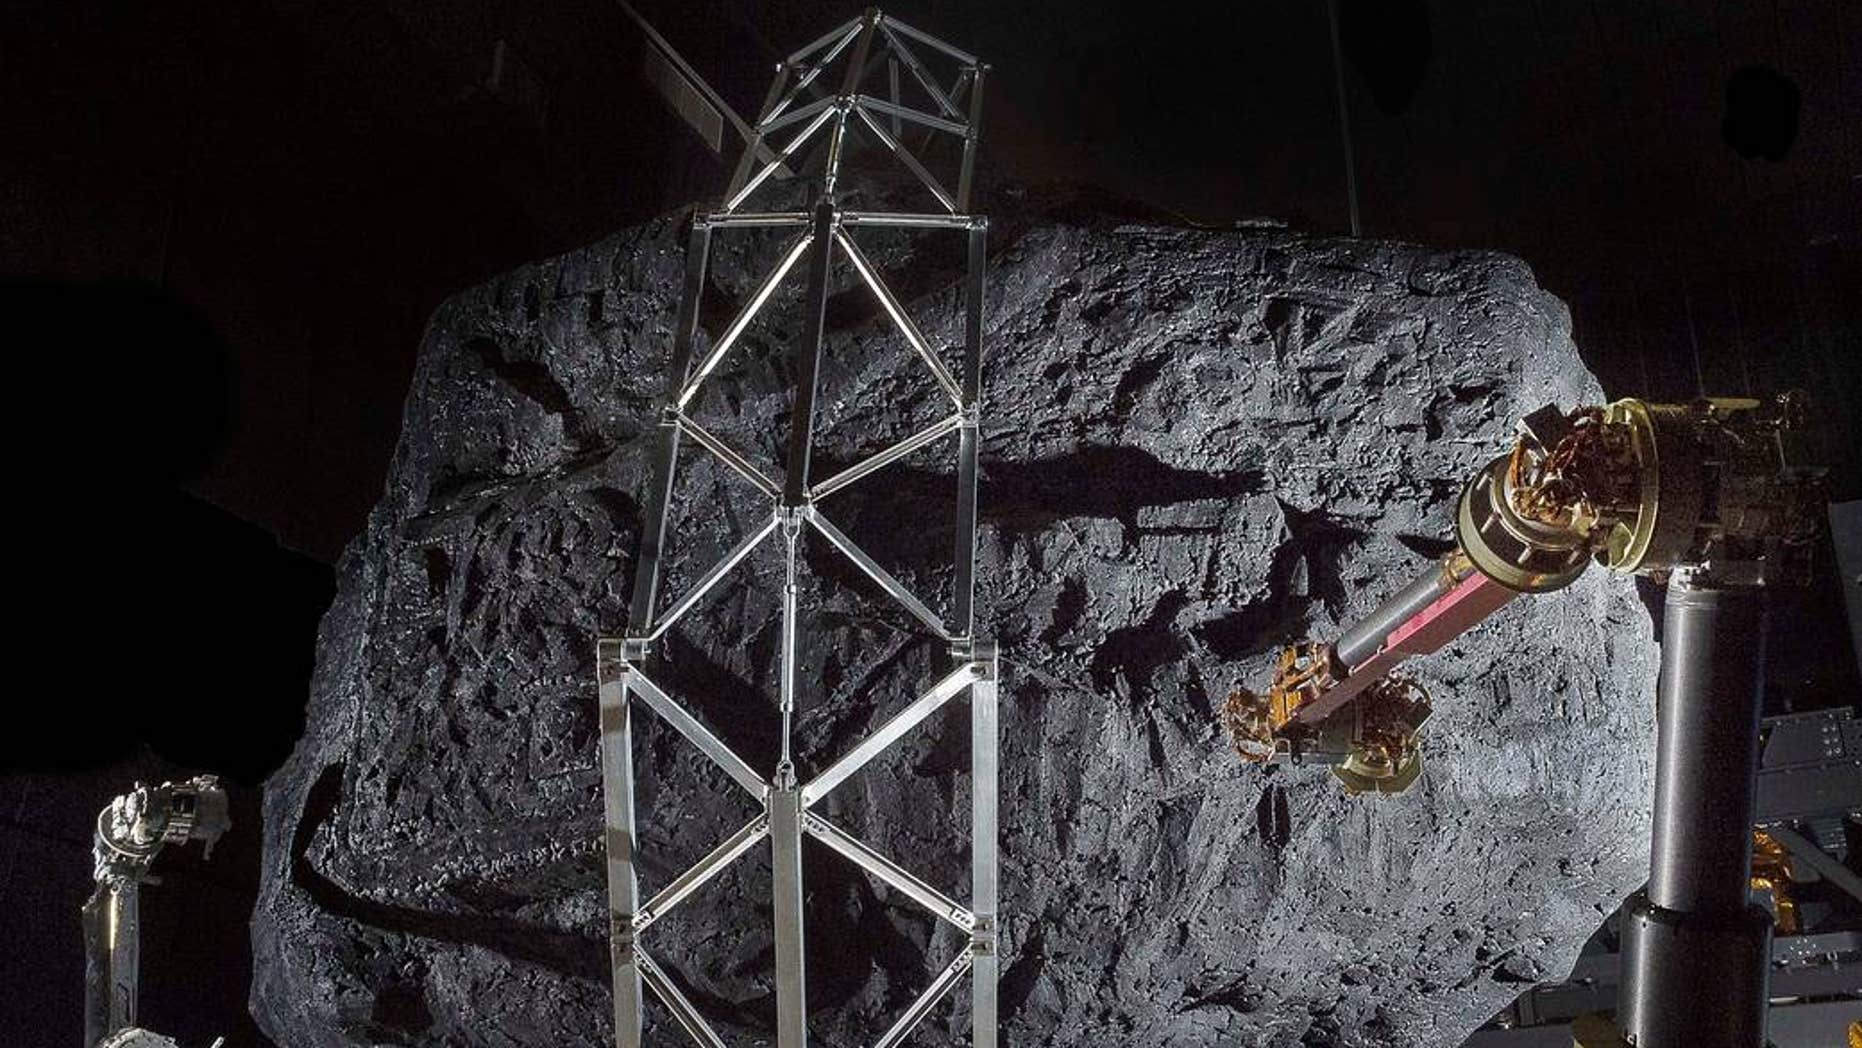 In preparation for the 2021 Asteroid Redirect Mission, this prototype of a robotic capture module system uses a mock asteroid boulder as a test at the Goddard Space Flight Center in Greenbelt, Maryland. (Credit: NASA)